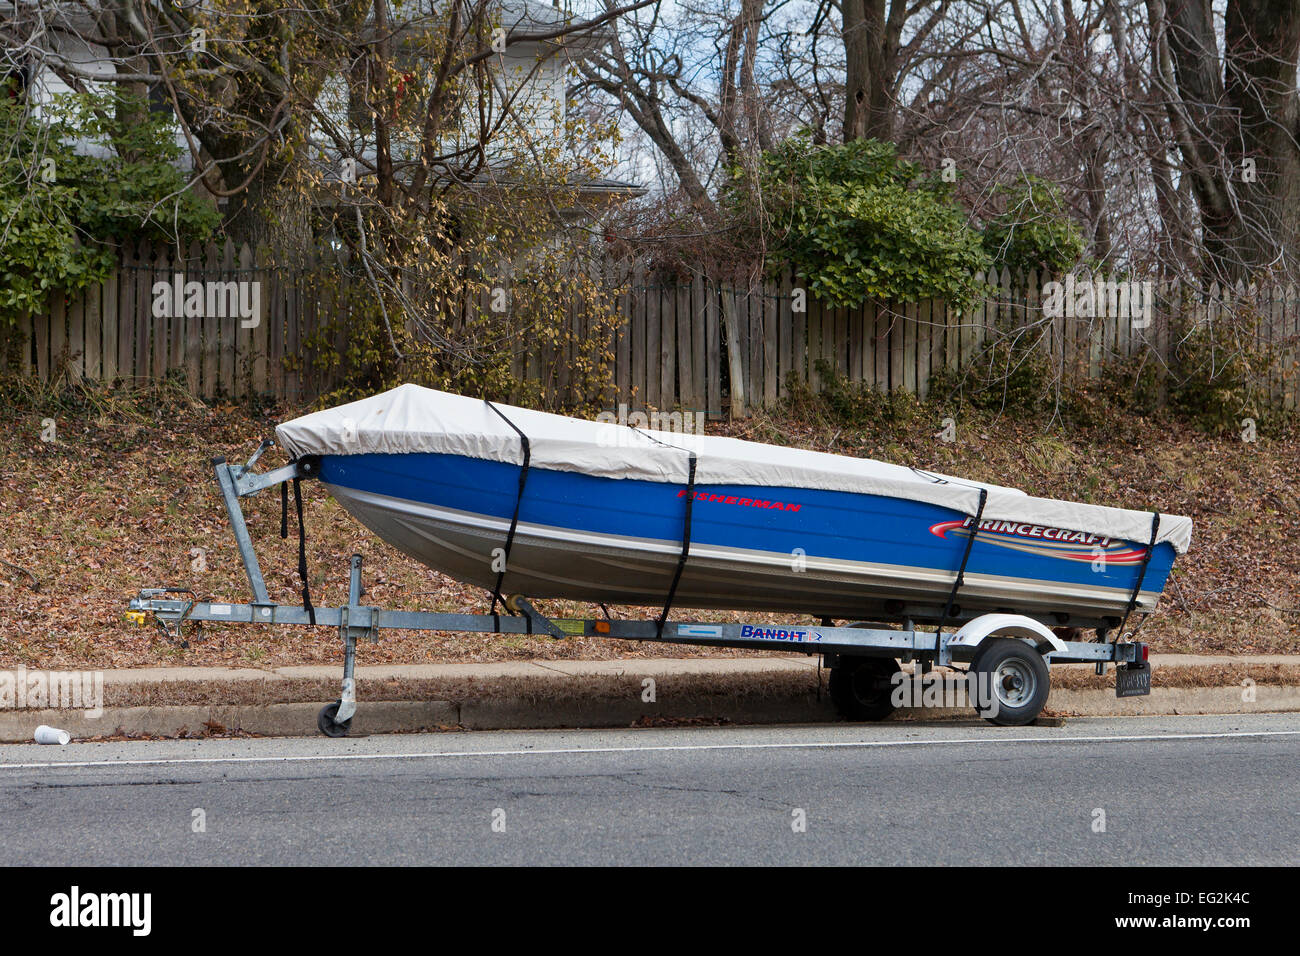 Sportsman fishing boat on trailer - USA - Stock Image